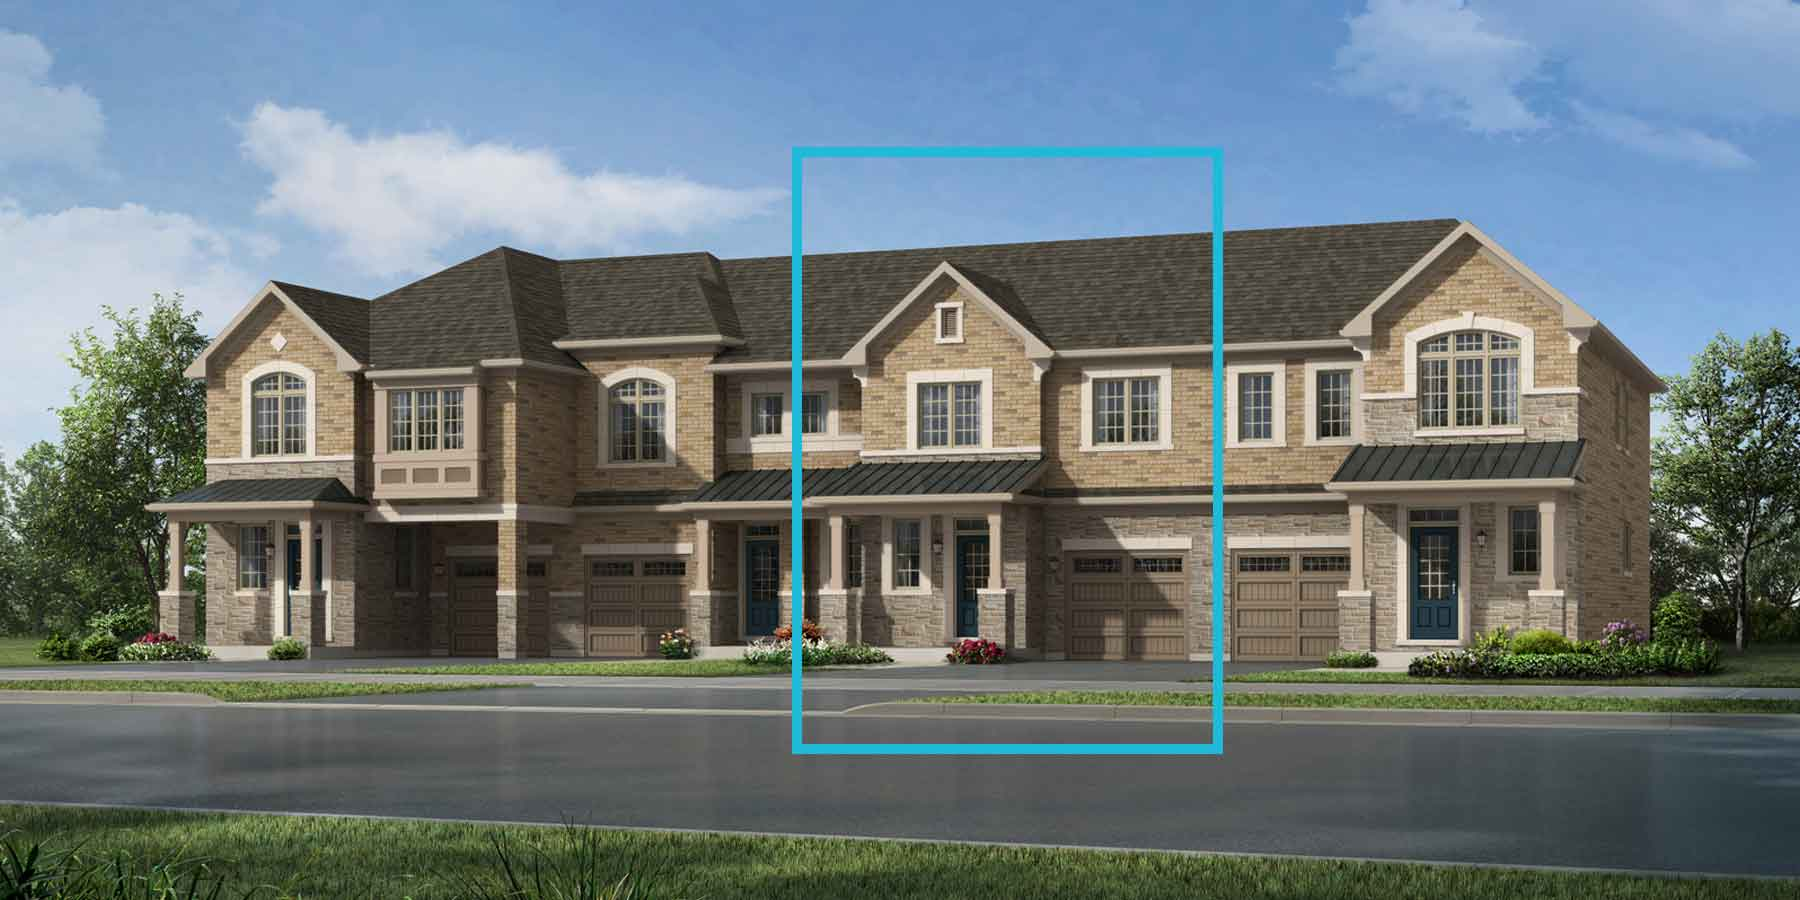 Forestbrook Plan englishmanor_seatonwhitevale_forestbrook at Seaton Whitevale in Pickering Ontario by Mattamy Homes